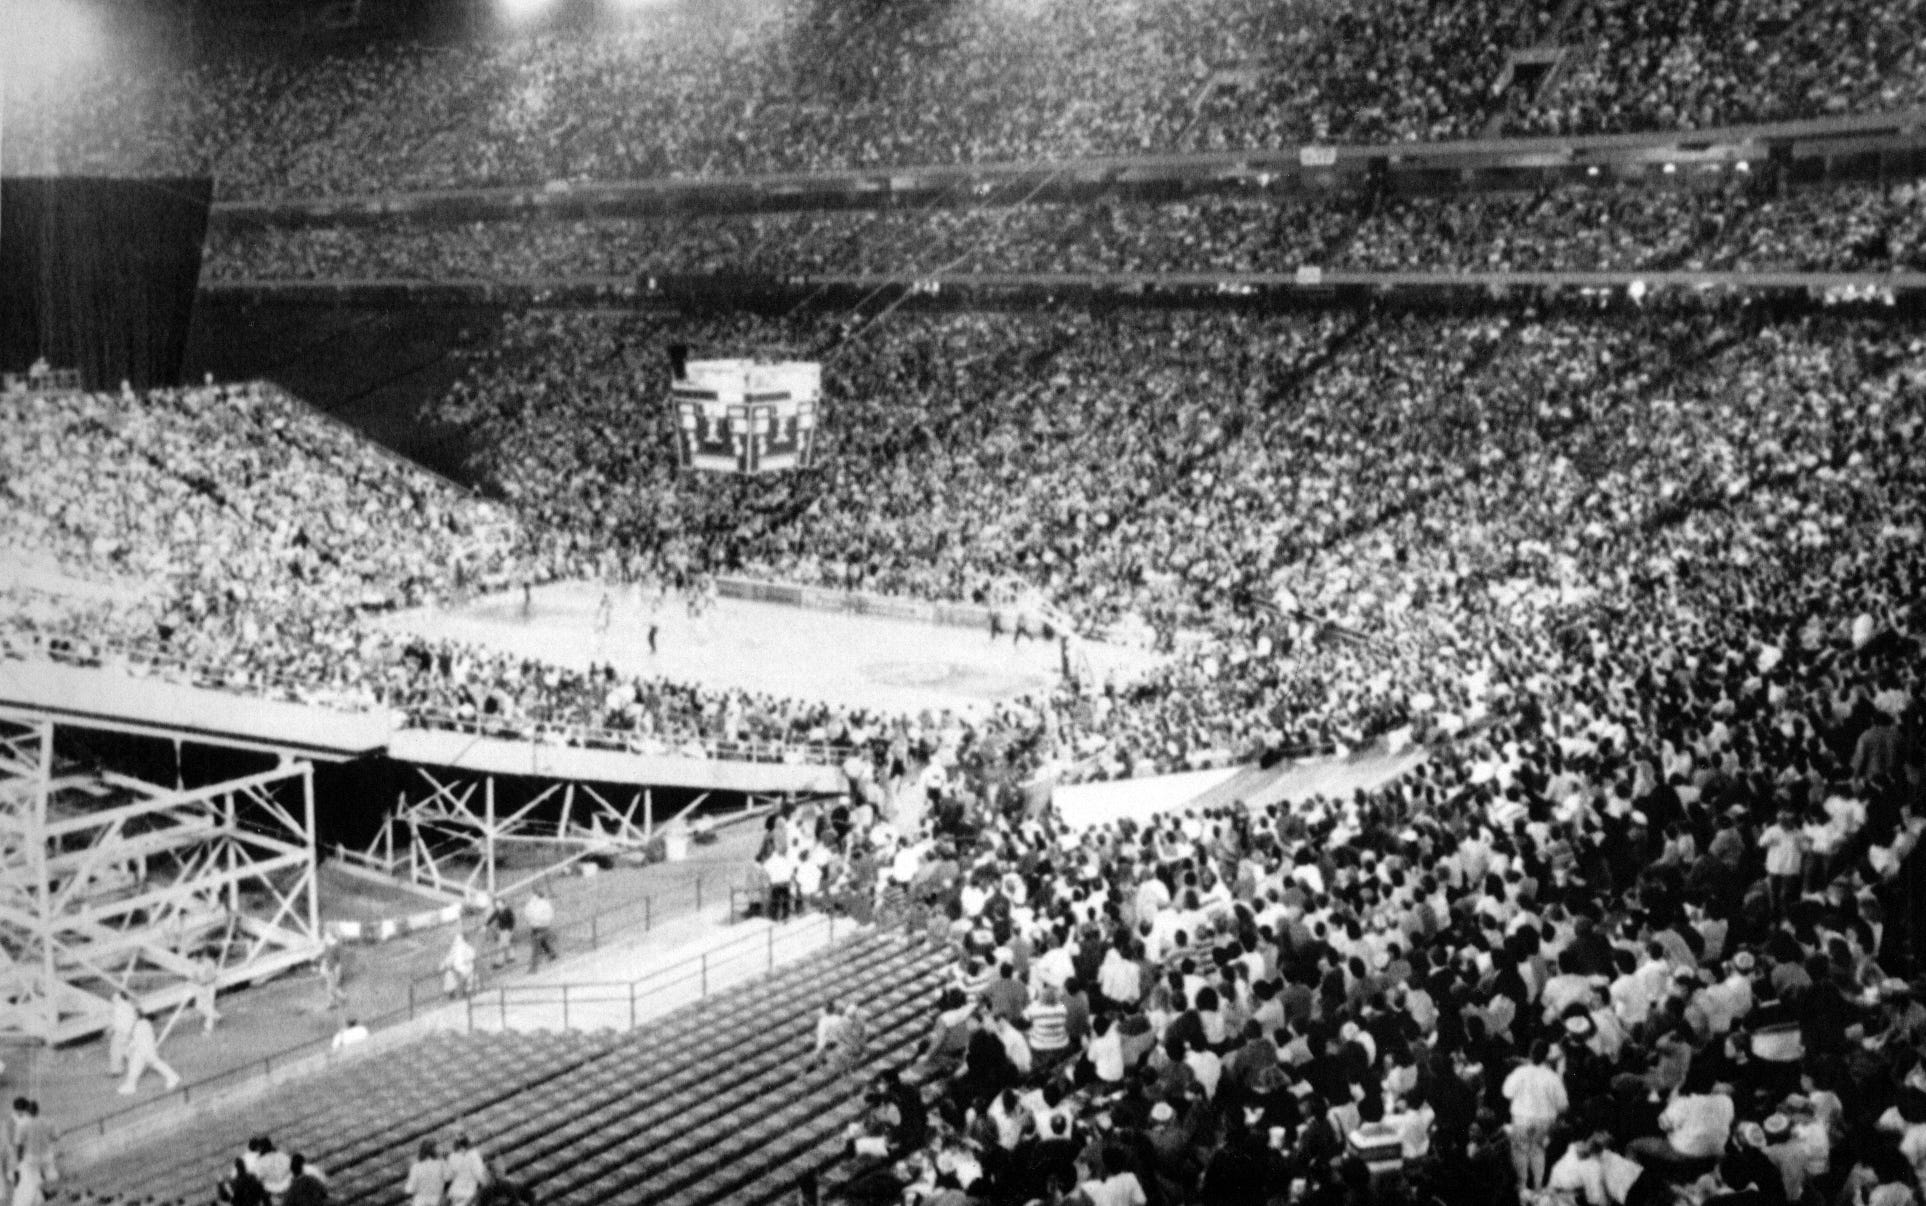 The Pistons played at the Silverdome from 1978 to 1988.